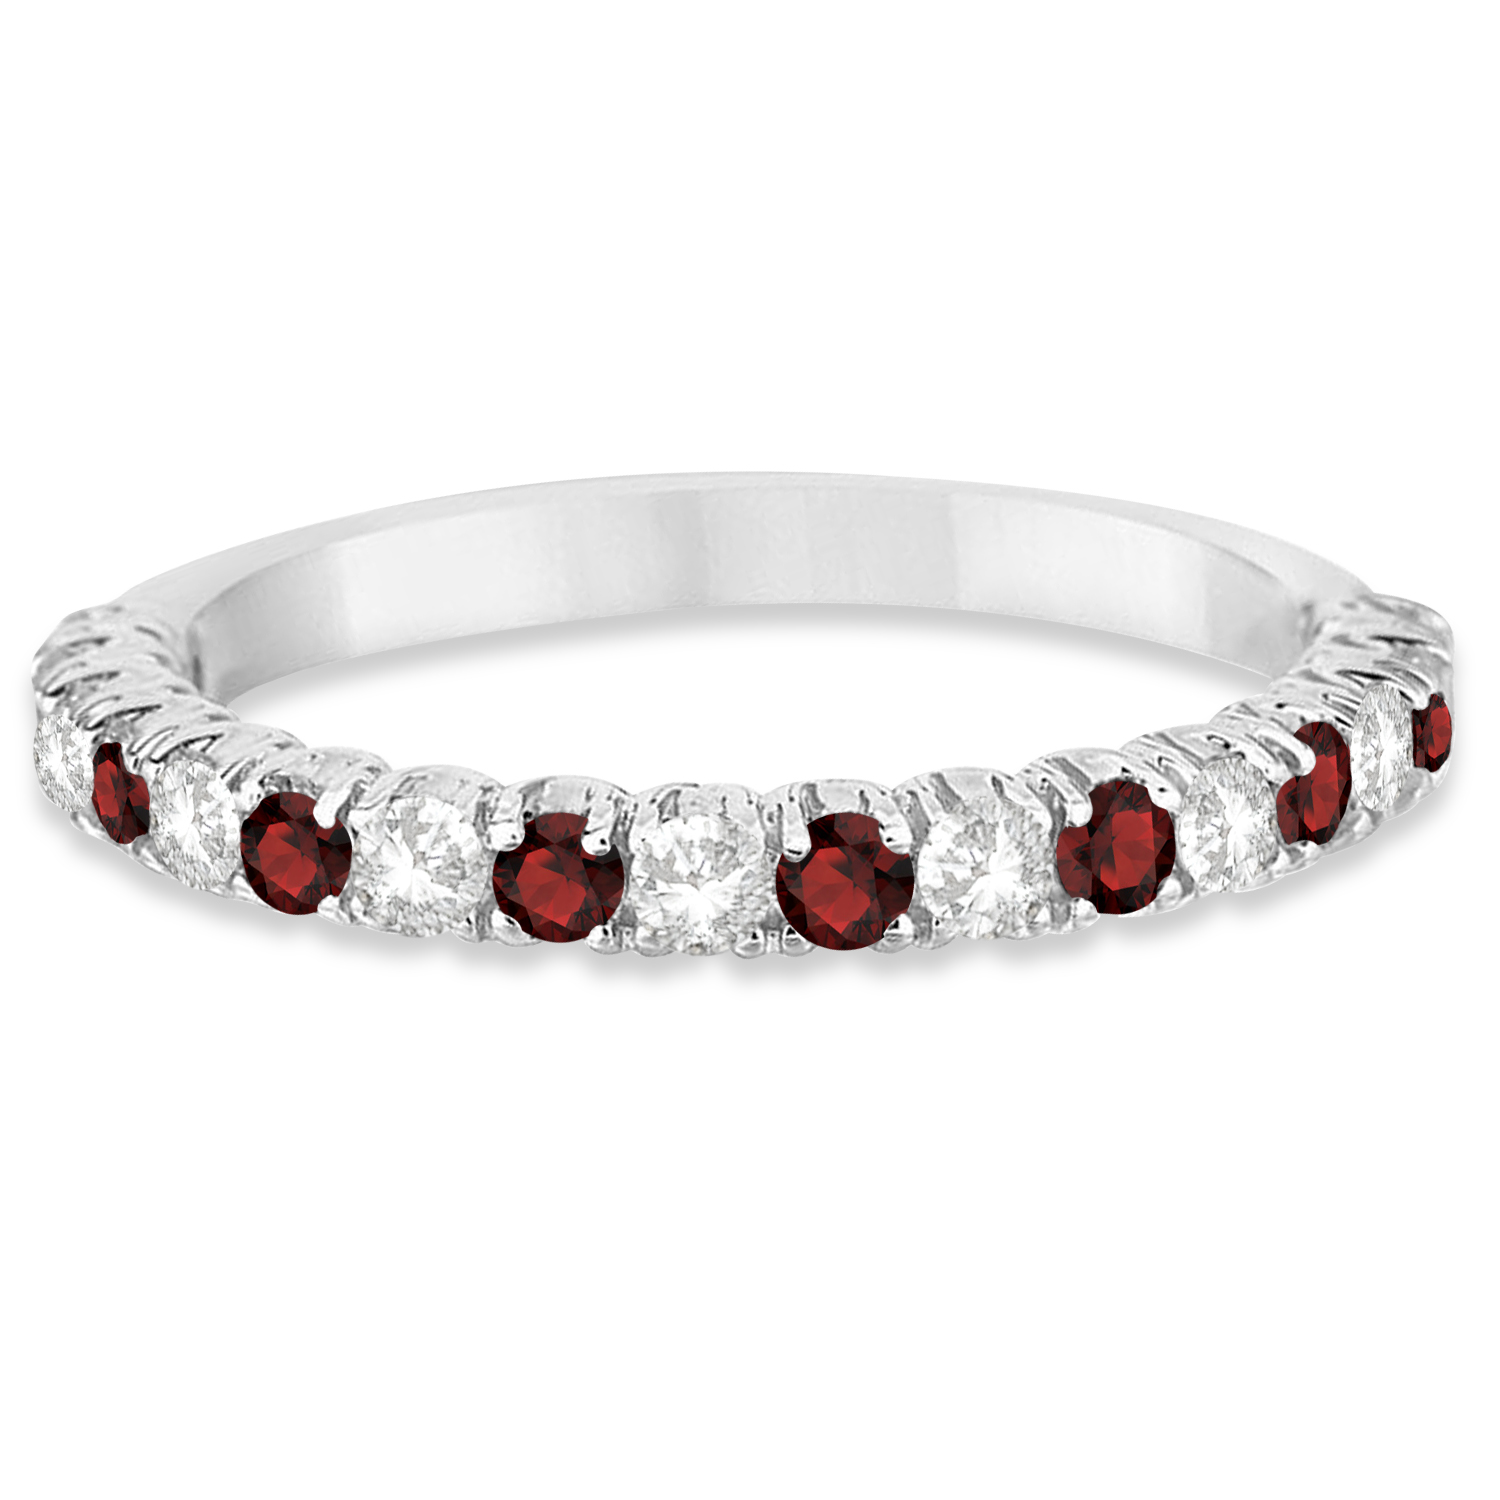 Garnet Ring Bands: Garnet & Diamond Wedding Band Anniversary Ring 14k White